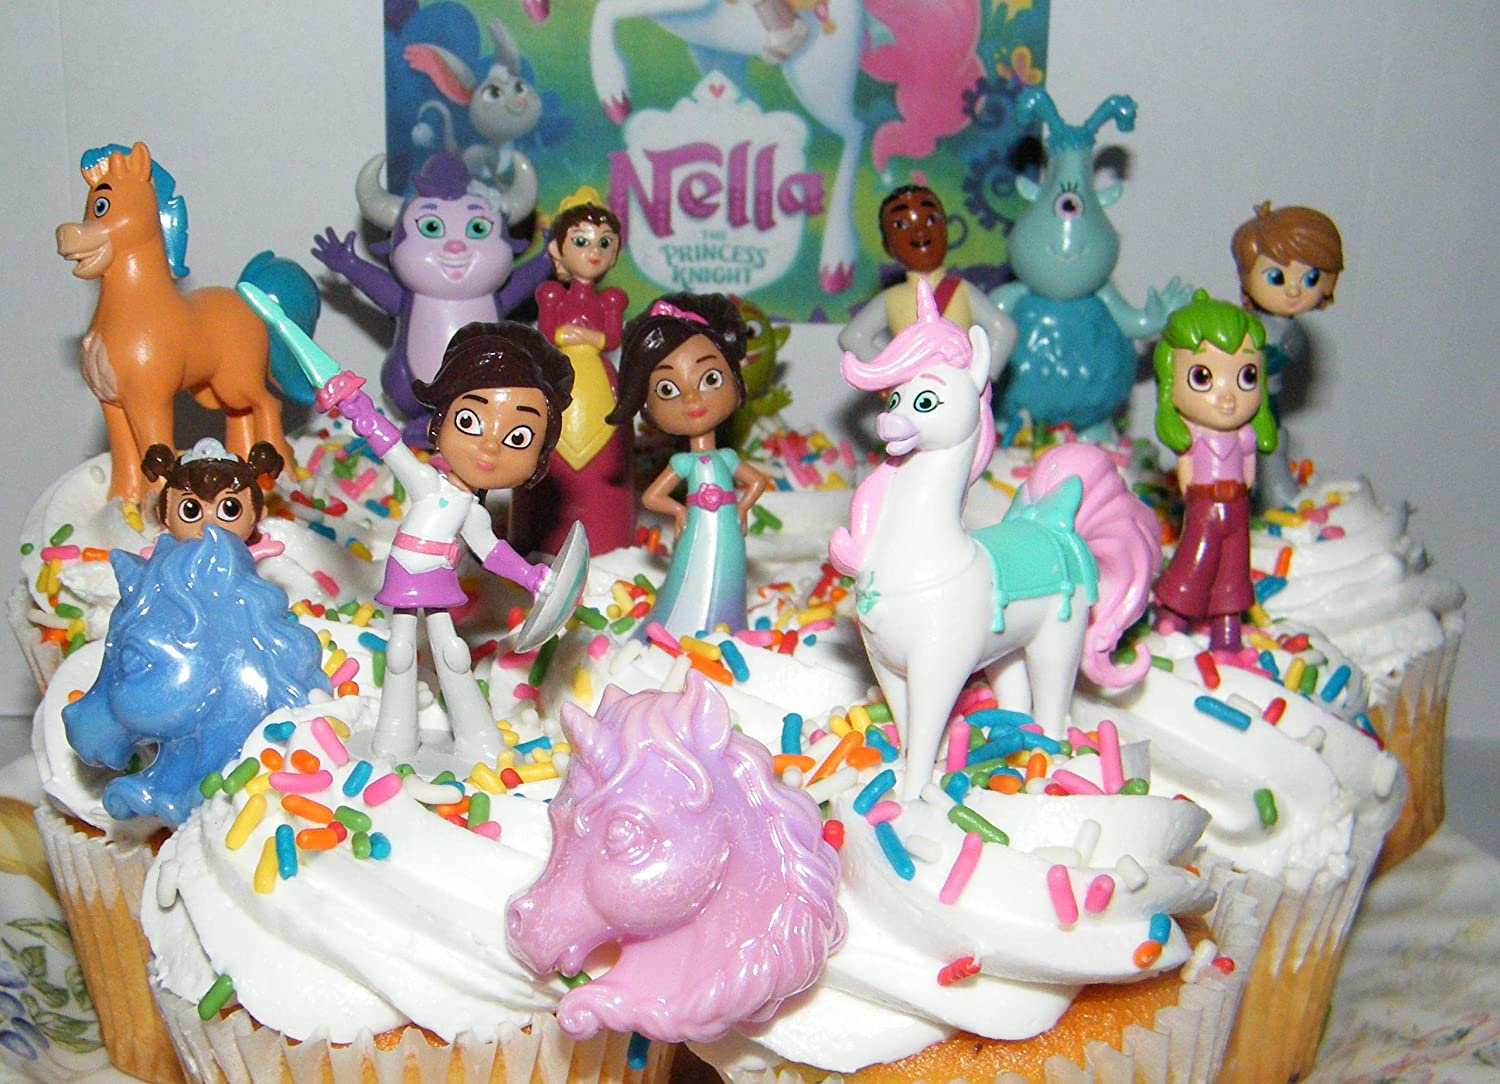 Unicorn Trinket and More Nella the Princess Knight Deluxe Party Favors Goody Bag Fillers Set of 14 with 12 Figures and 2 Unicorn ToyRings Featuring Knight Nella Cake Toppers 3 Dragons